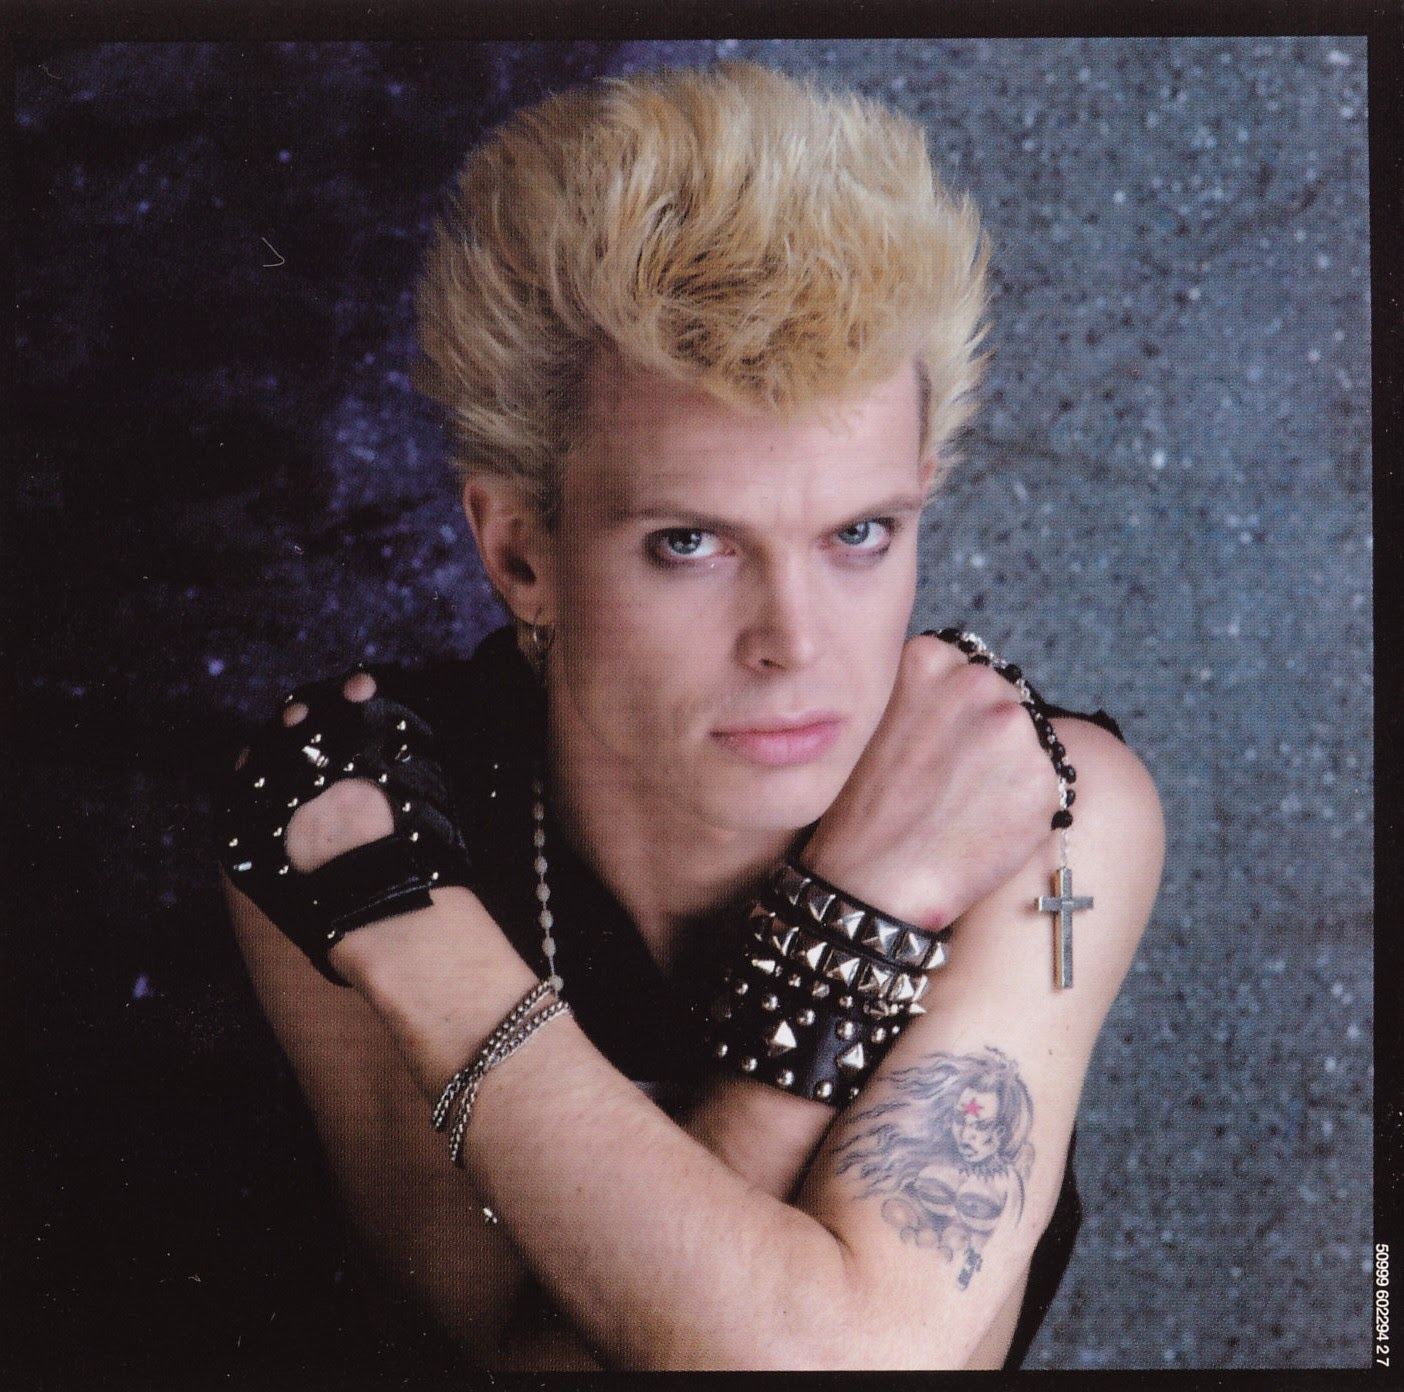 Billy Idol y su tatuaje de Octobriana